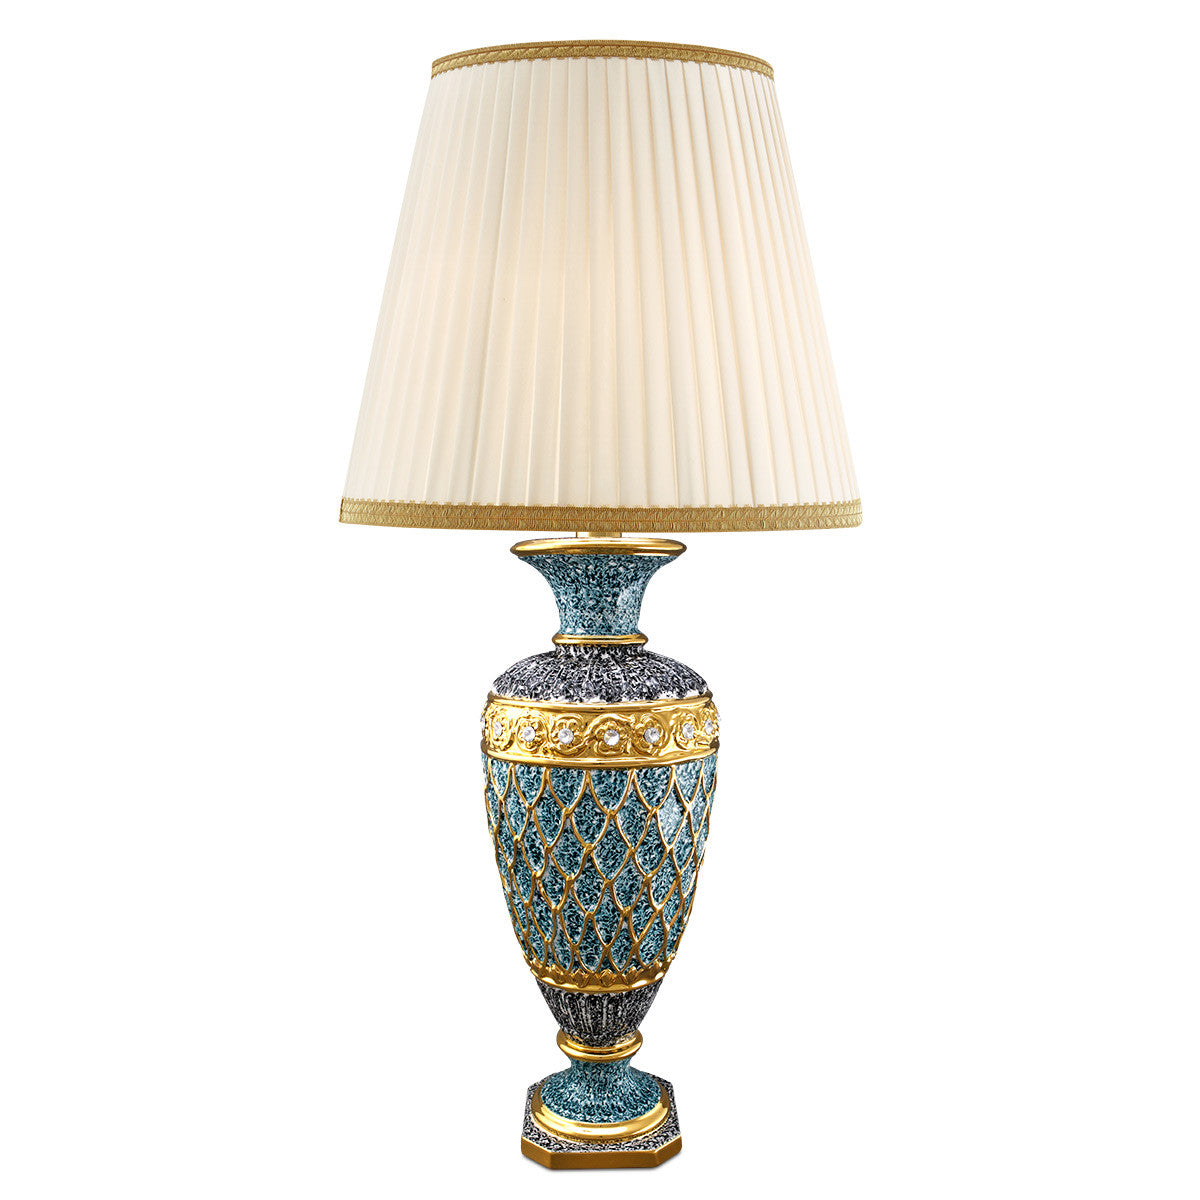 Ceramic classic table lamp in green color